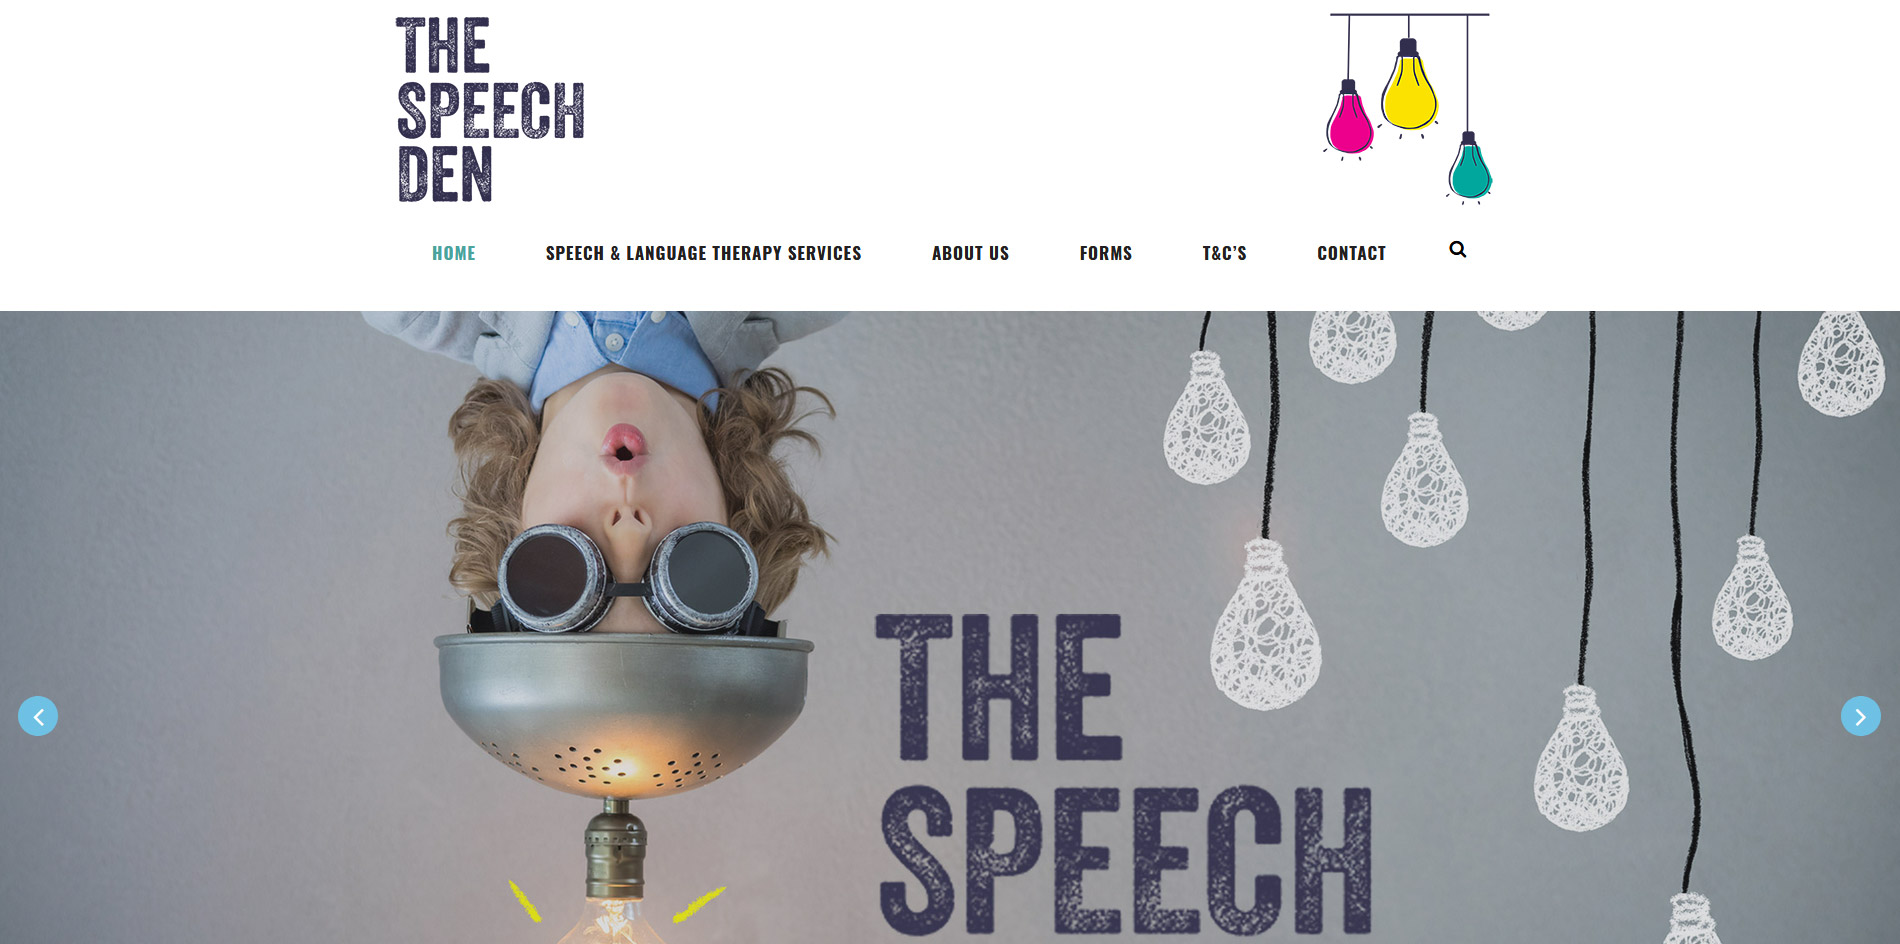 The Speech Den Website